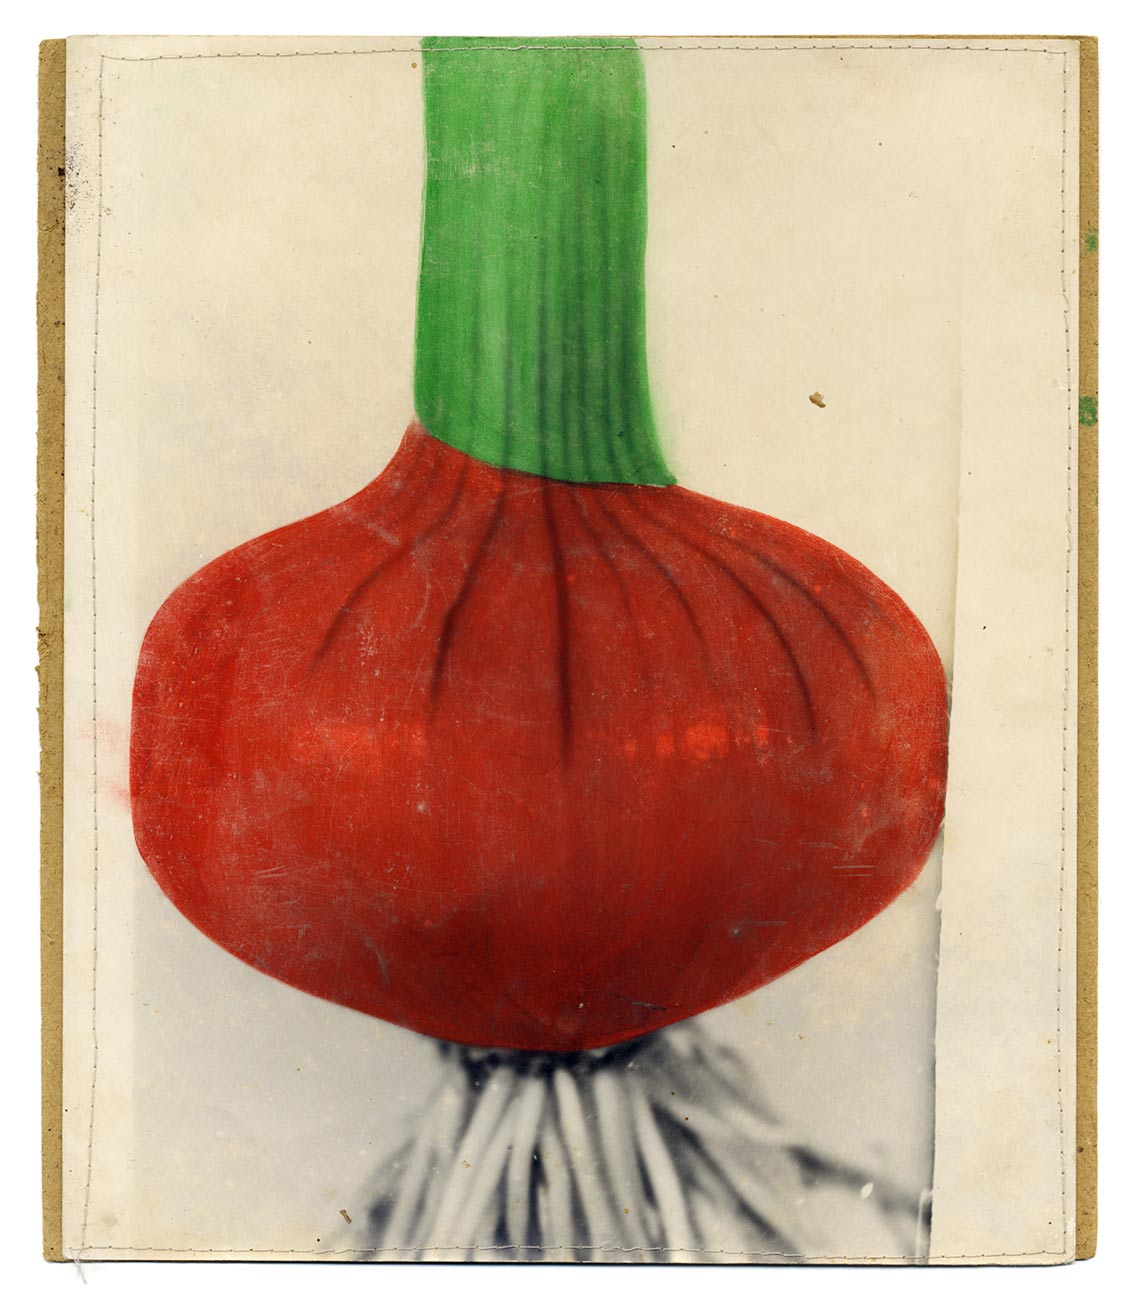 Study of vegetables, hand coloured photographs on cardboard, 1980s. Courtesy of The Archive of Modern Conflict